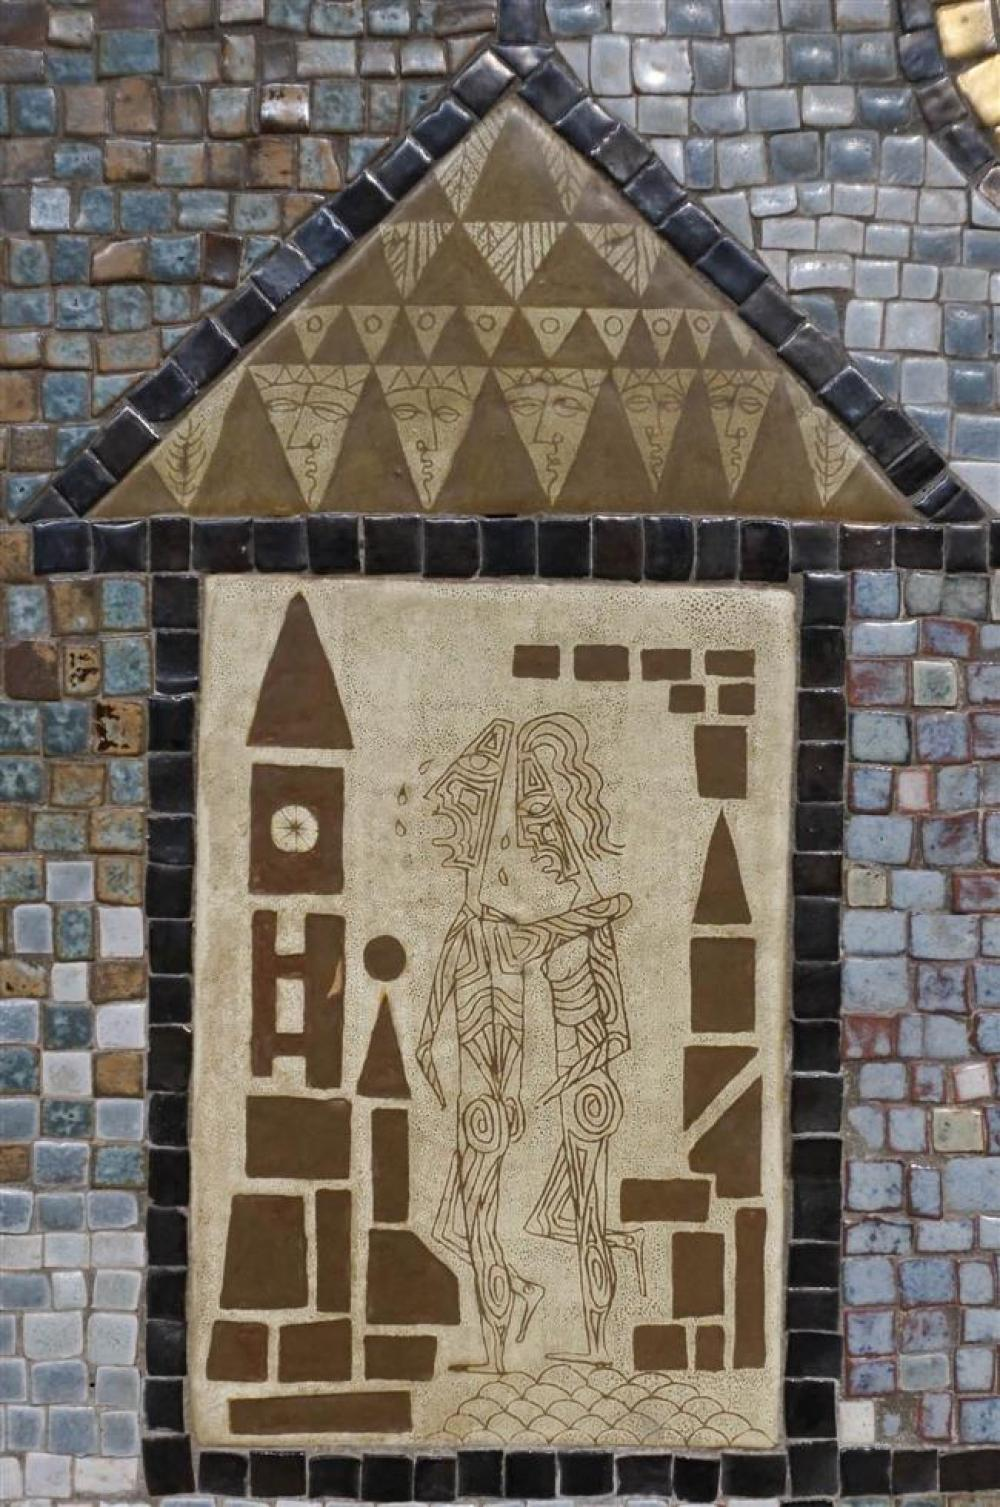 David Holleman, The Expulsion, Framed Mosaic Tile; Panel: 26 x 23.25 Inches